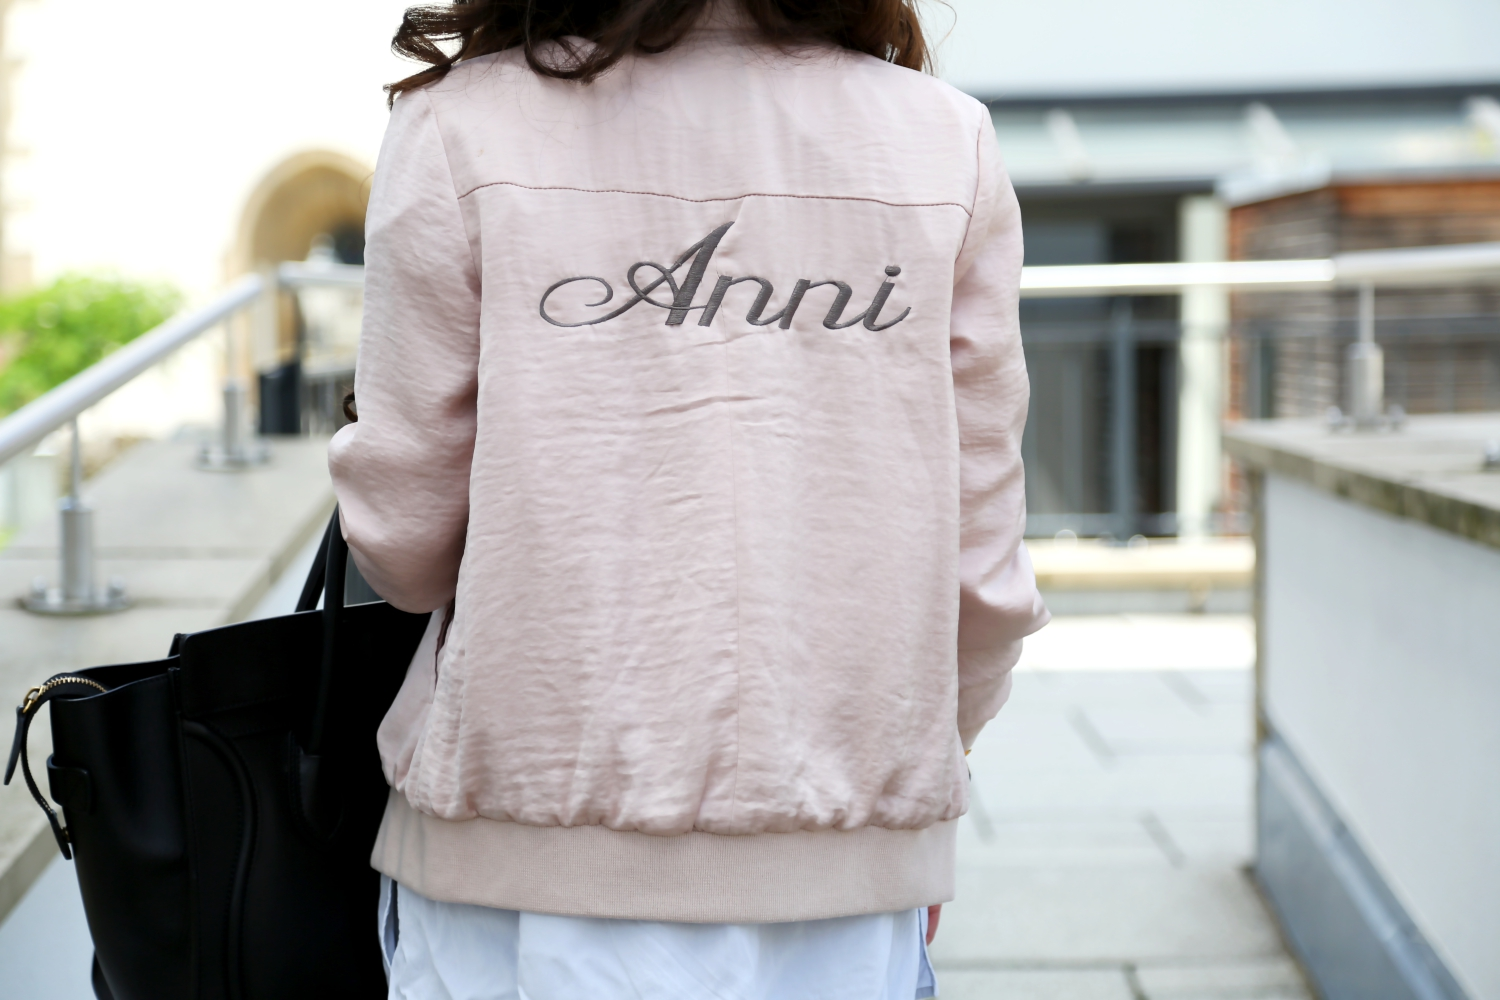 outfit-details-celine-luggage-bag-edited-blouse-pink-bomber-jacket-satin